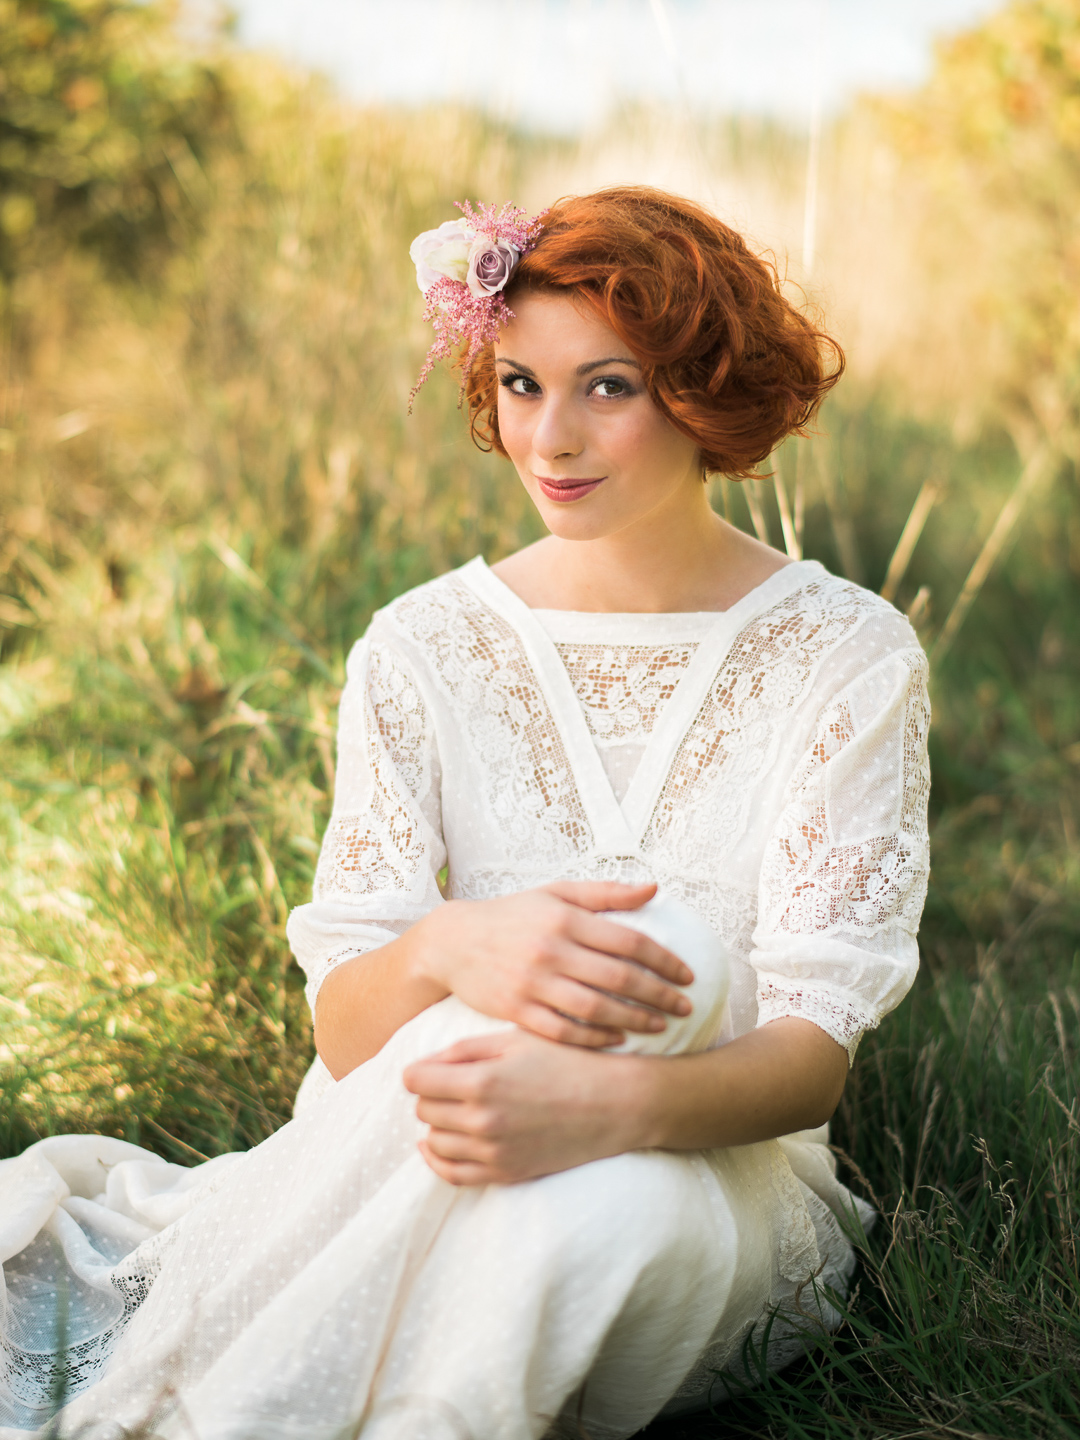 Festival Brides John Barwood Photography Styled Shoot46